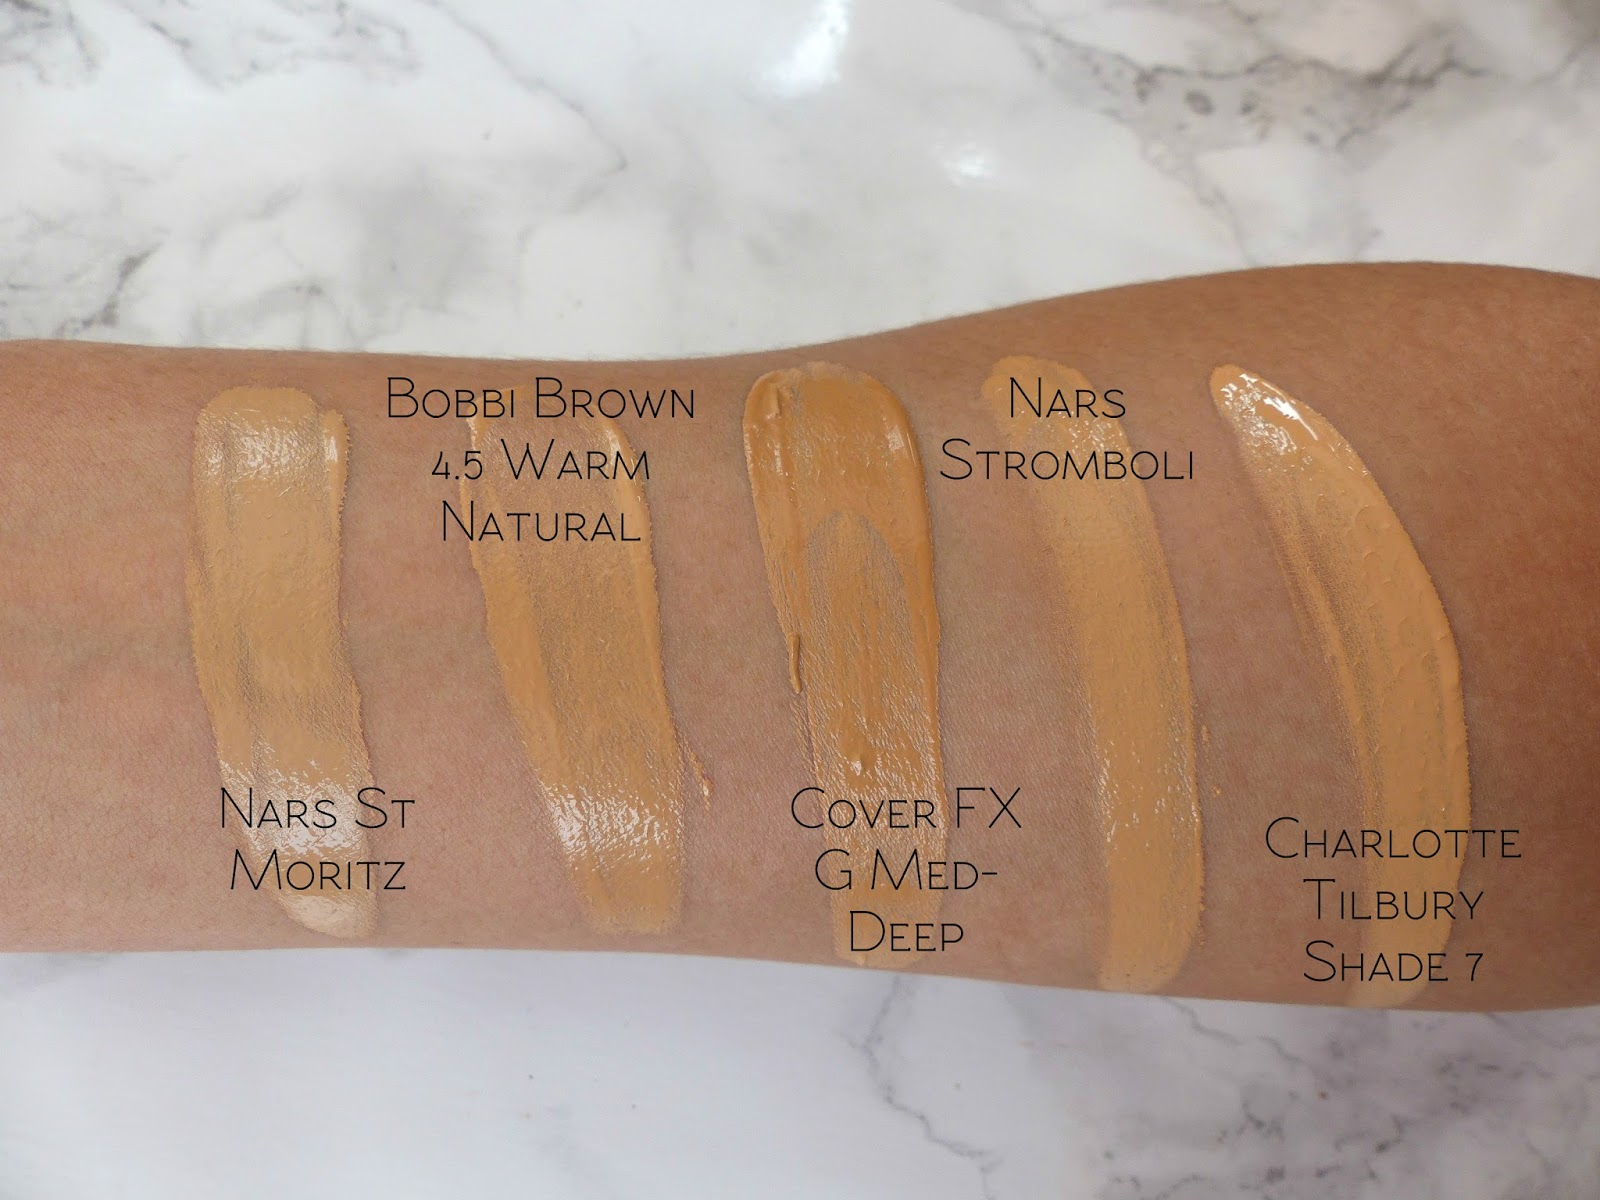 Fenty Beauty 240 Pro Filt R Soft Matte Longwear Foundation